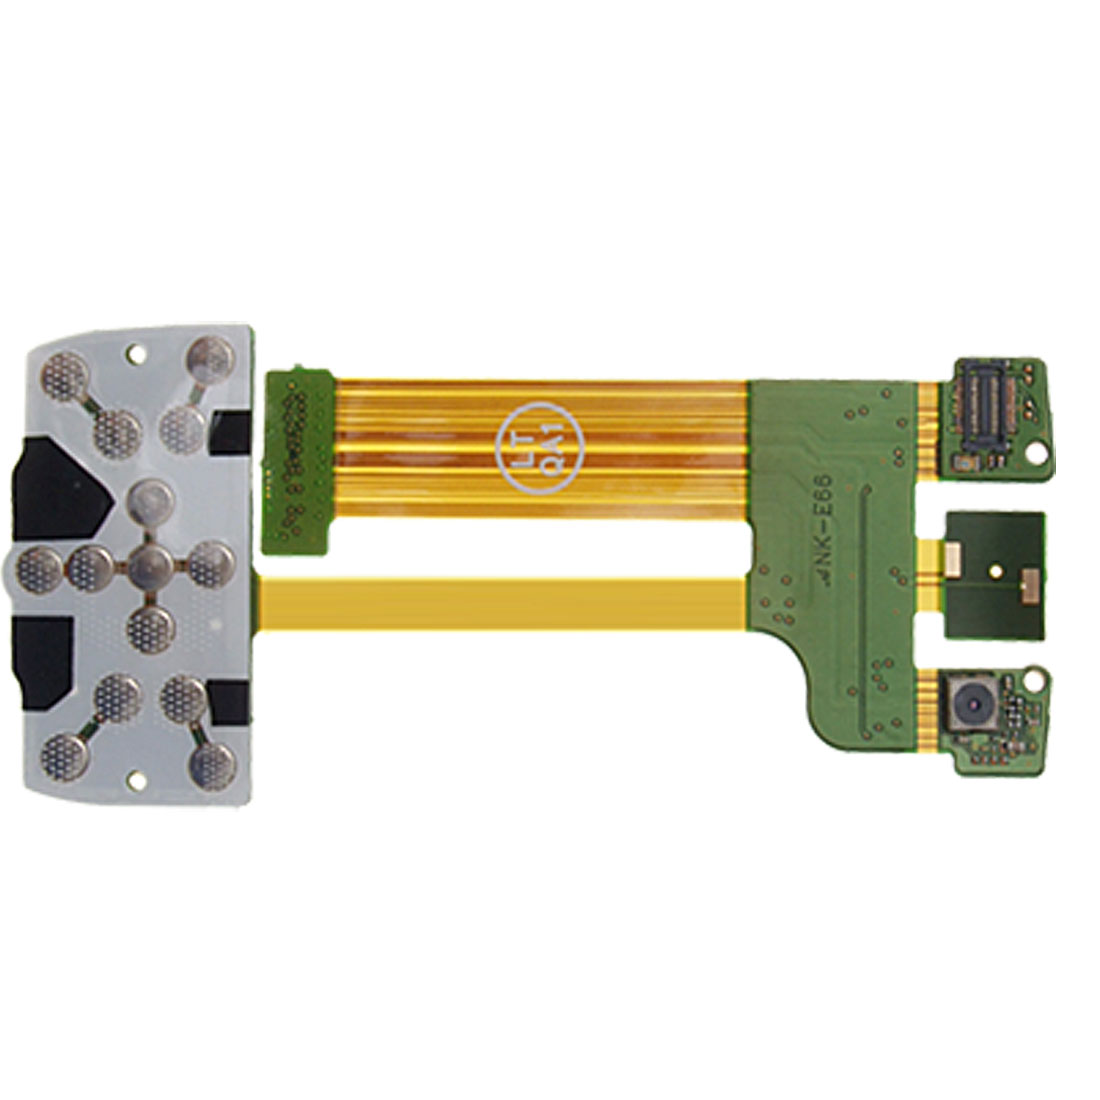 Replacement Flex Cable Ribbon for Nokia E66 Mobile